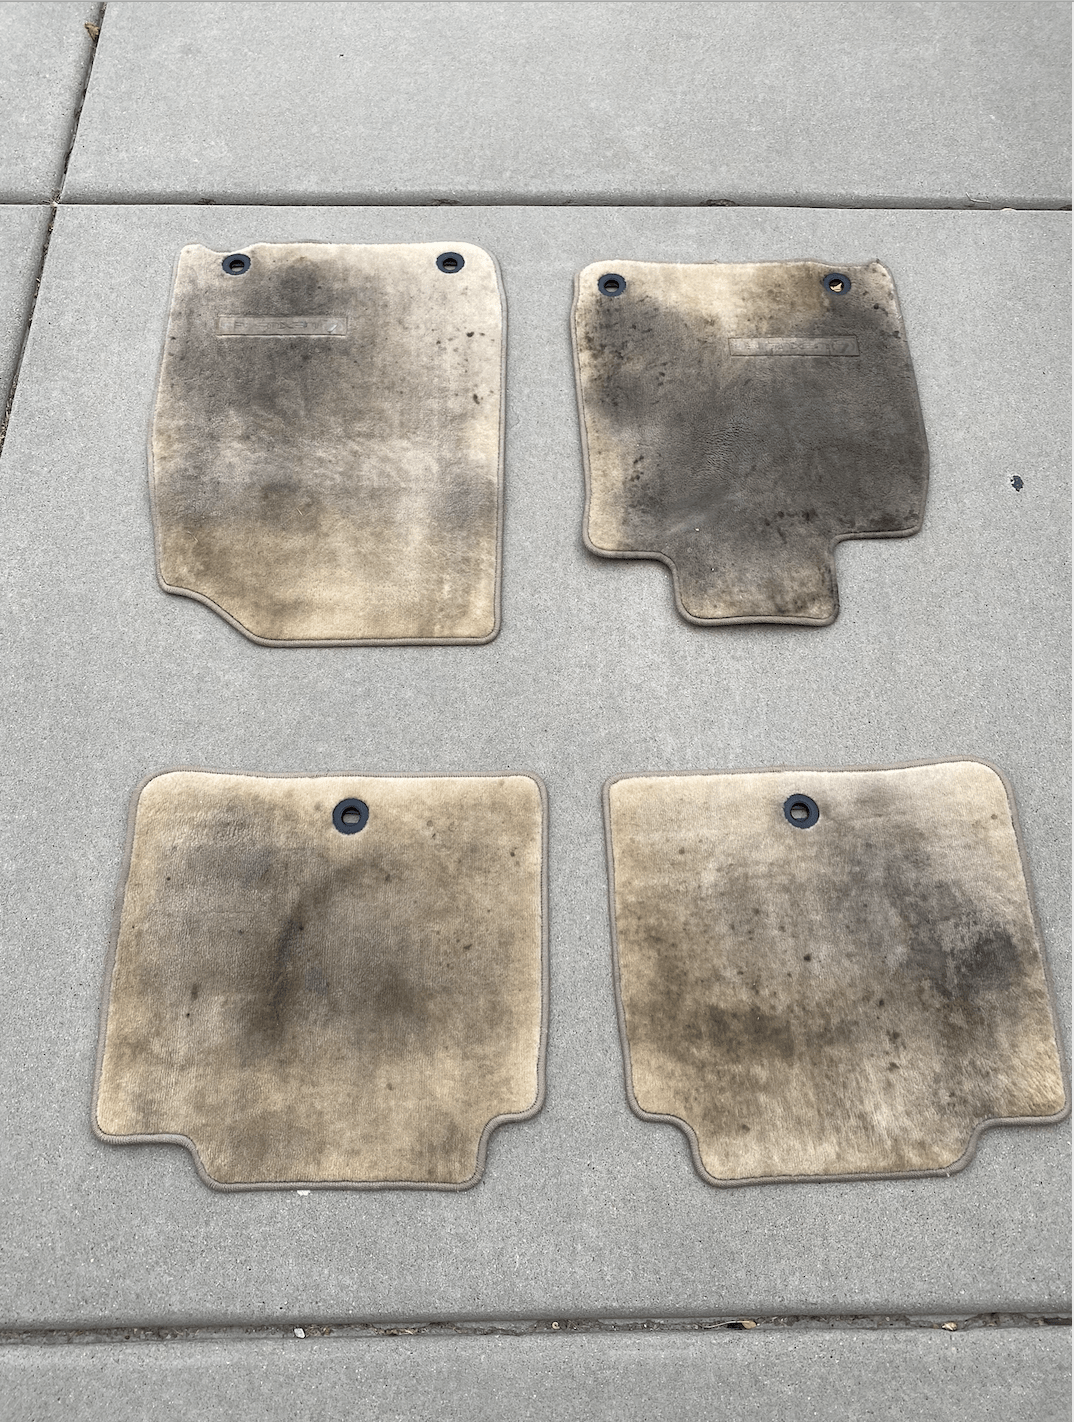 Dirty car carpets before being detailed